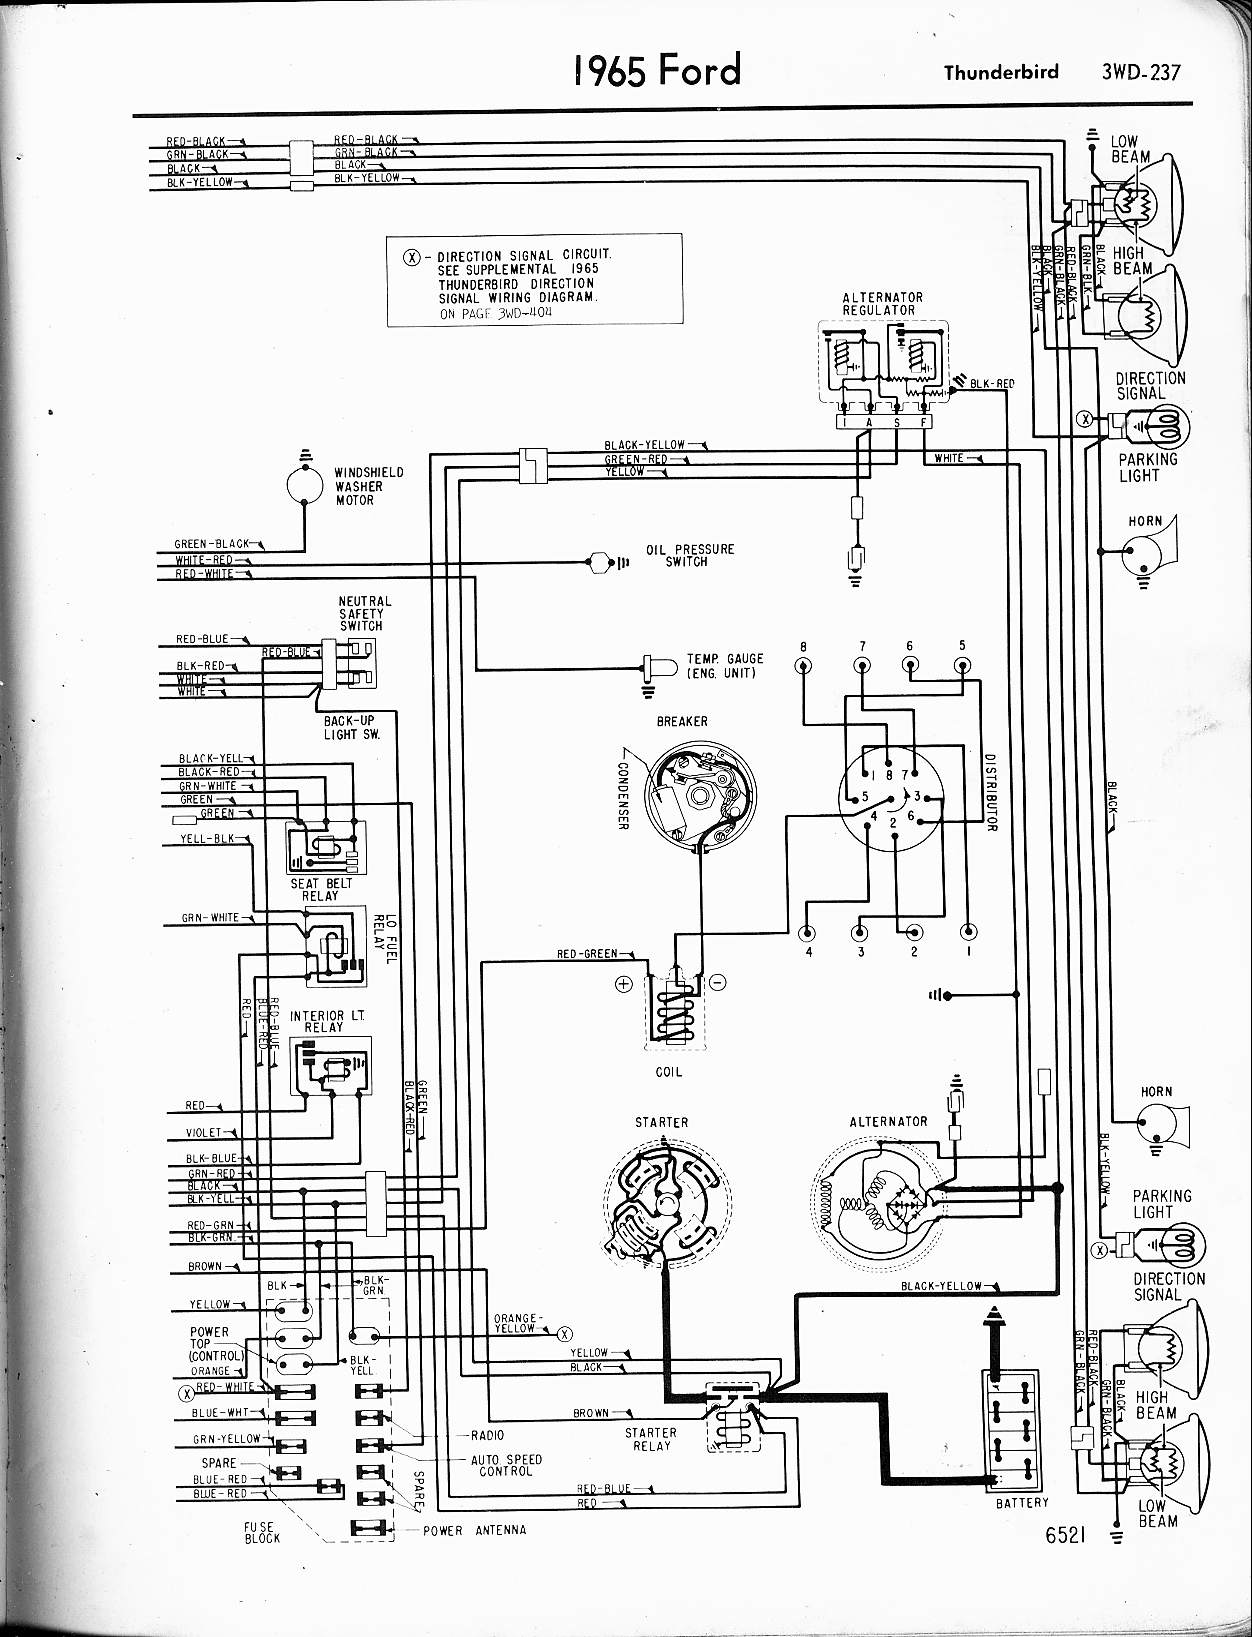 57 65 ford wiring diagrams rh oldcarmanualproject com 1965 ford alternator wiring diagram 1965 ford alternator wiring diagram